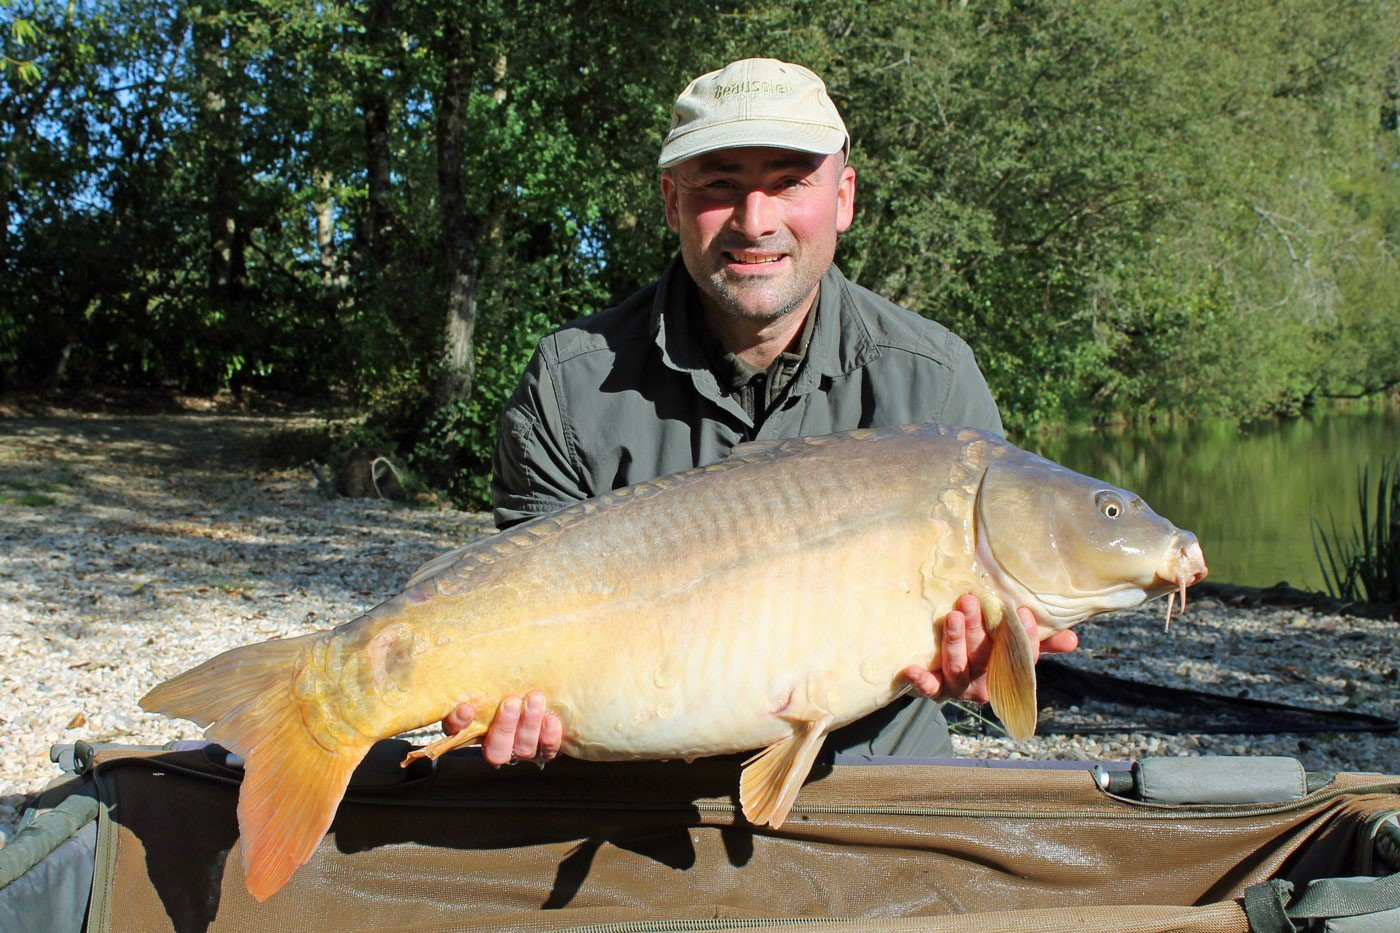 Simon with Petals a 32lb mirror carp